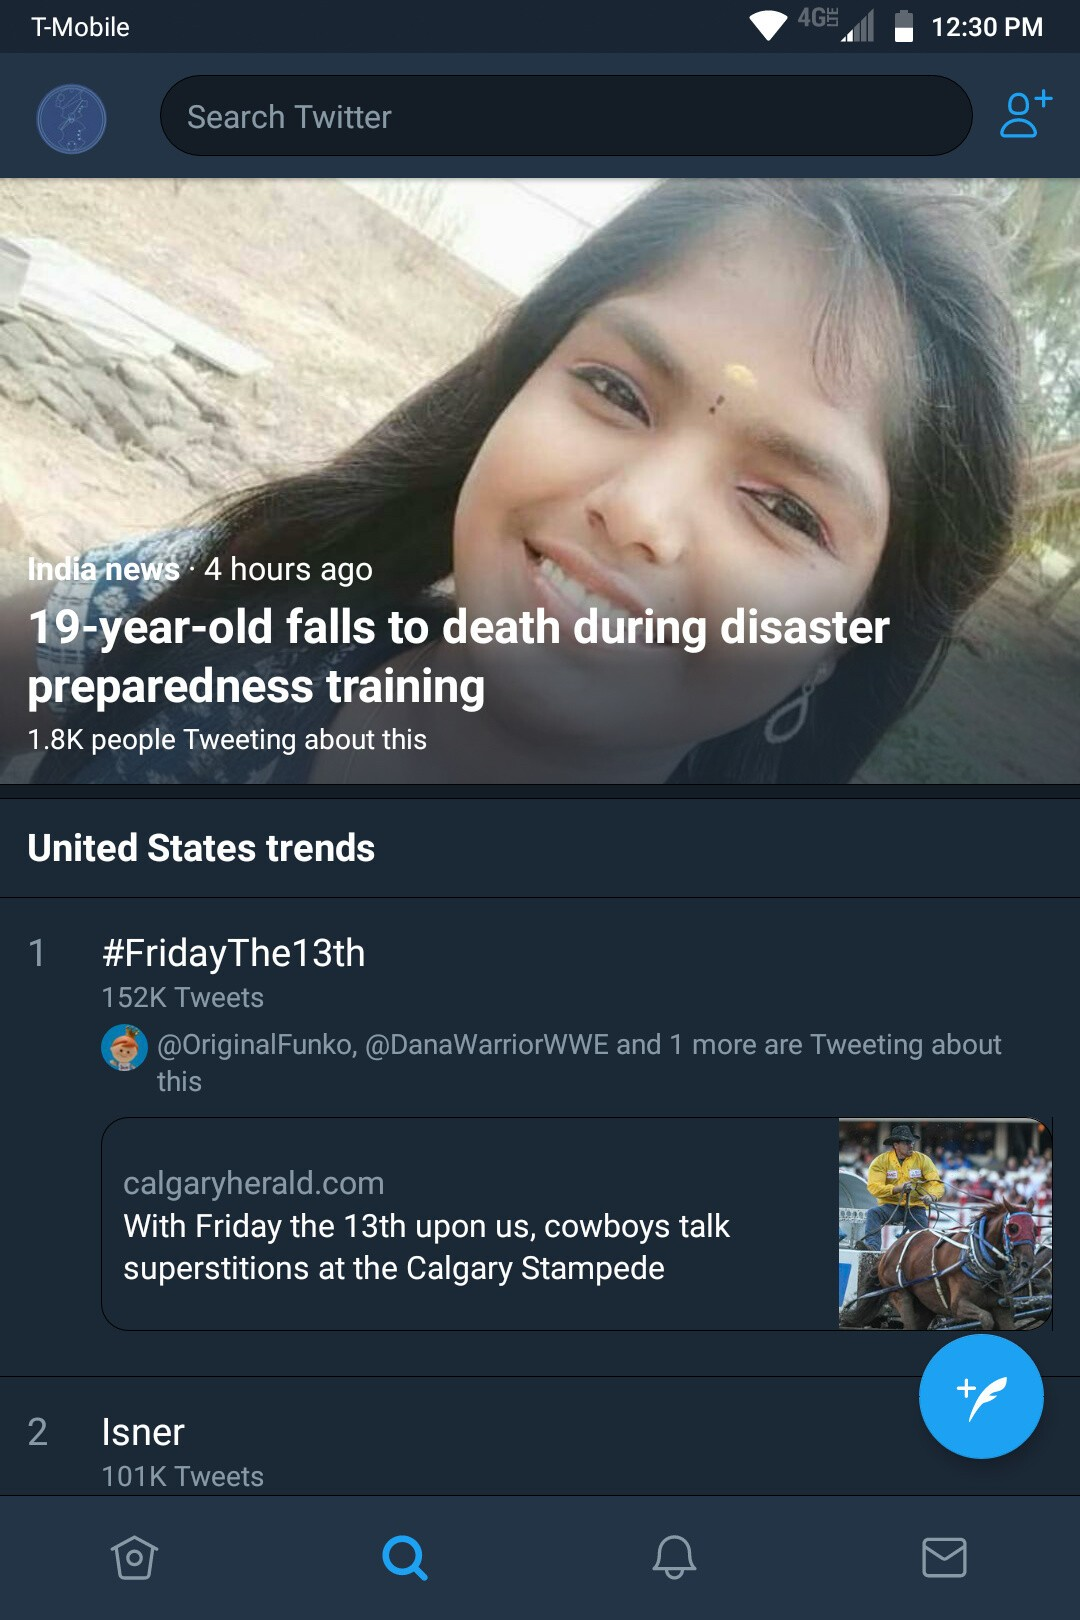 Twitter launches new bottom navigation bar on Twitter for Android screenshot 20180713 123044